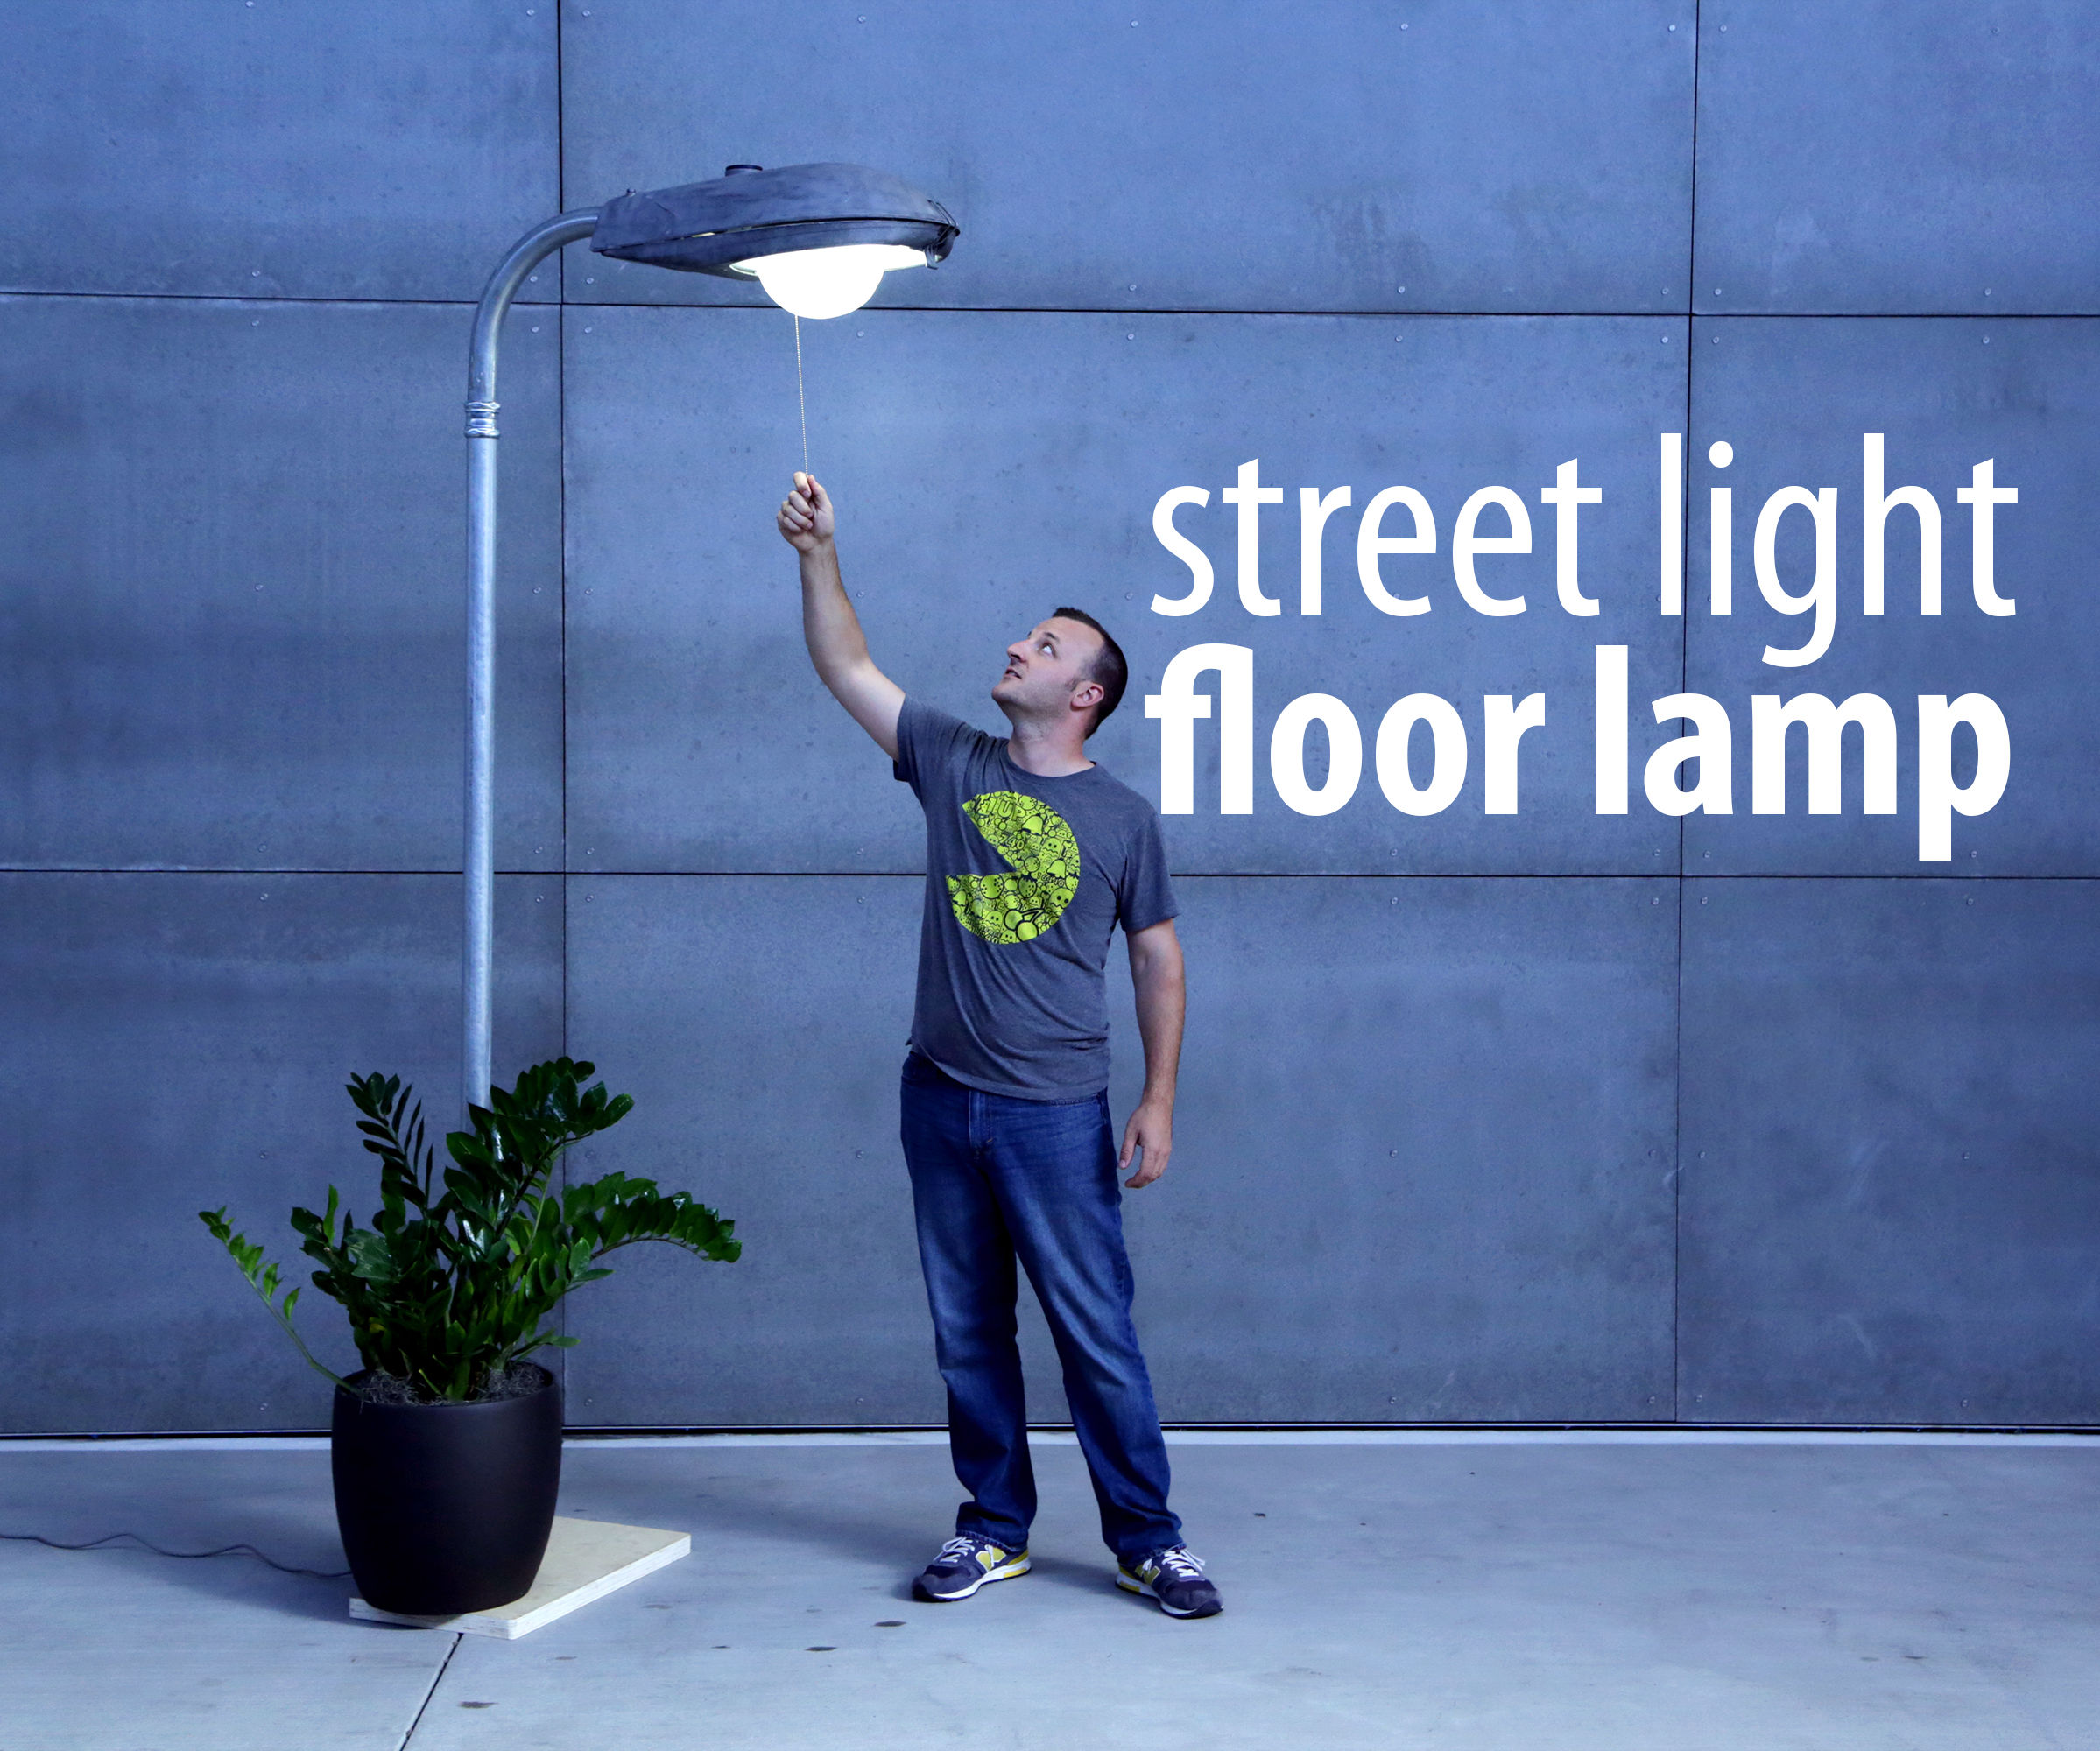 Street light floor lamp